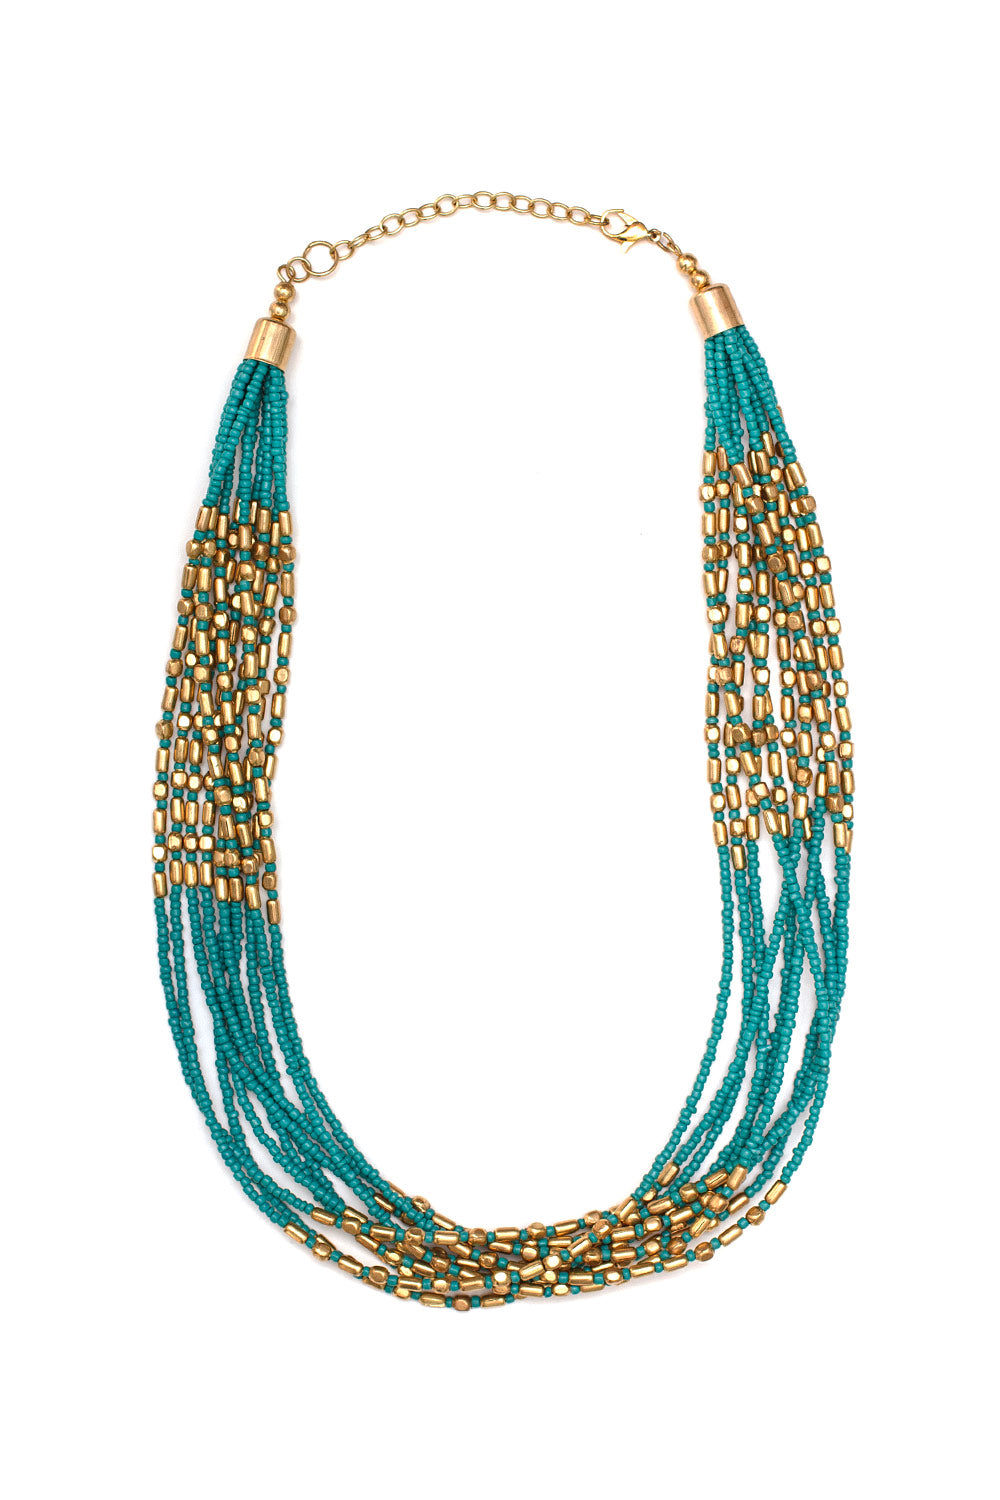 Type 3 Cleopatra Necklace